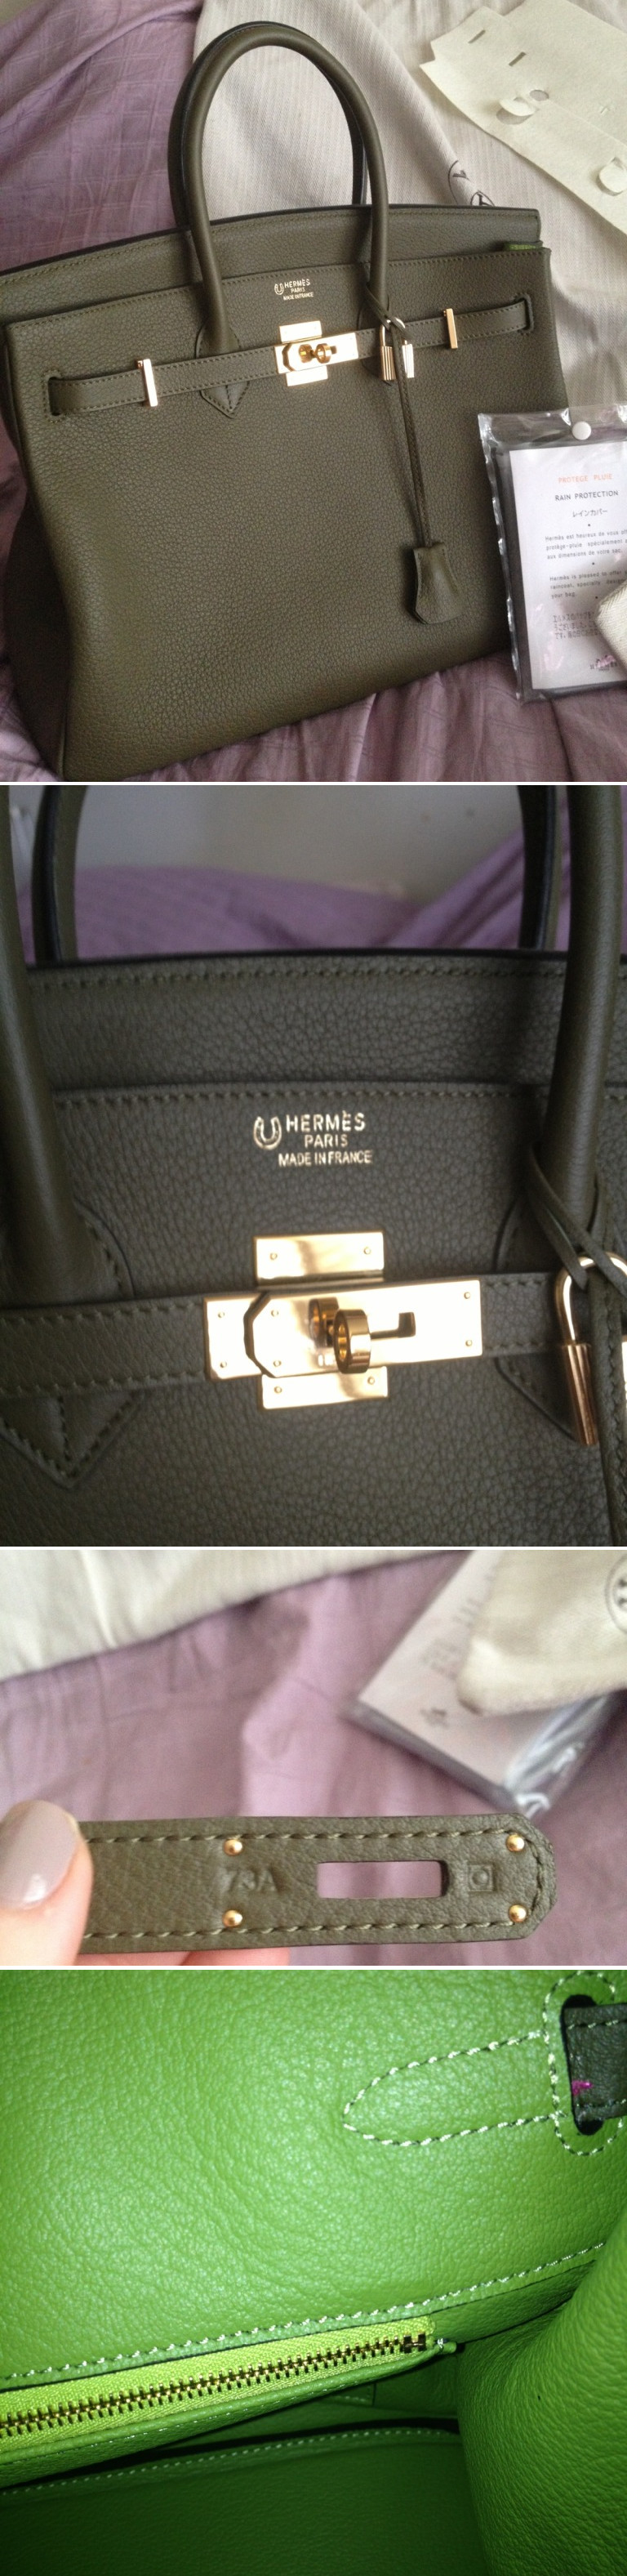 Hermes fake horseshoe birkin bag